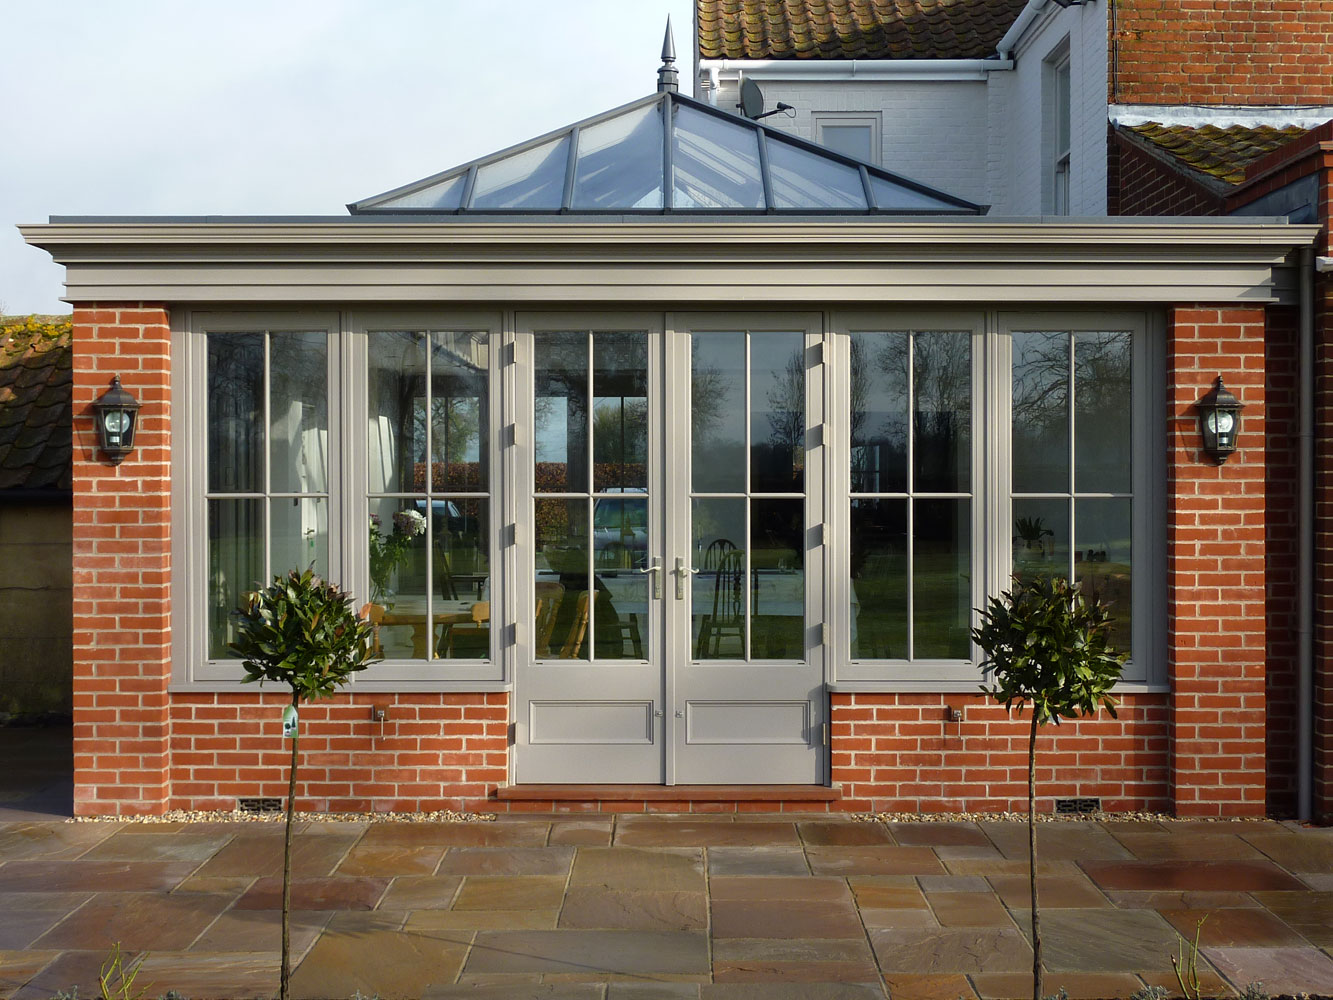 Garage Roofs Orangery Fascia Just Roof Lanterns